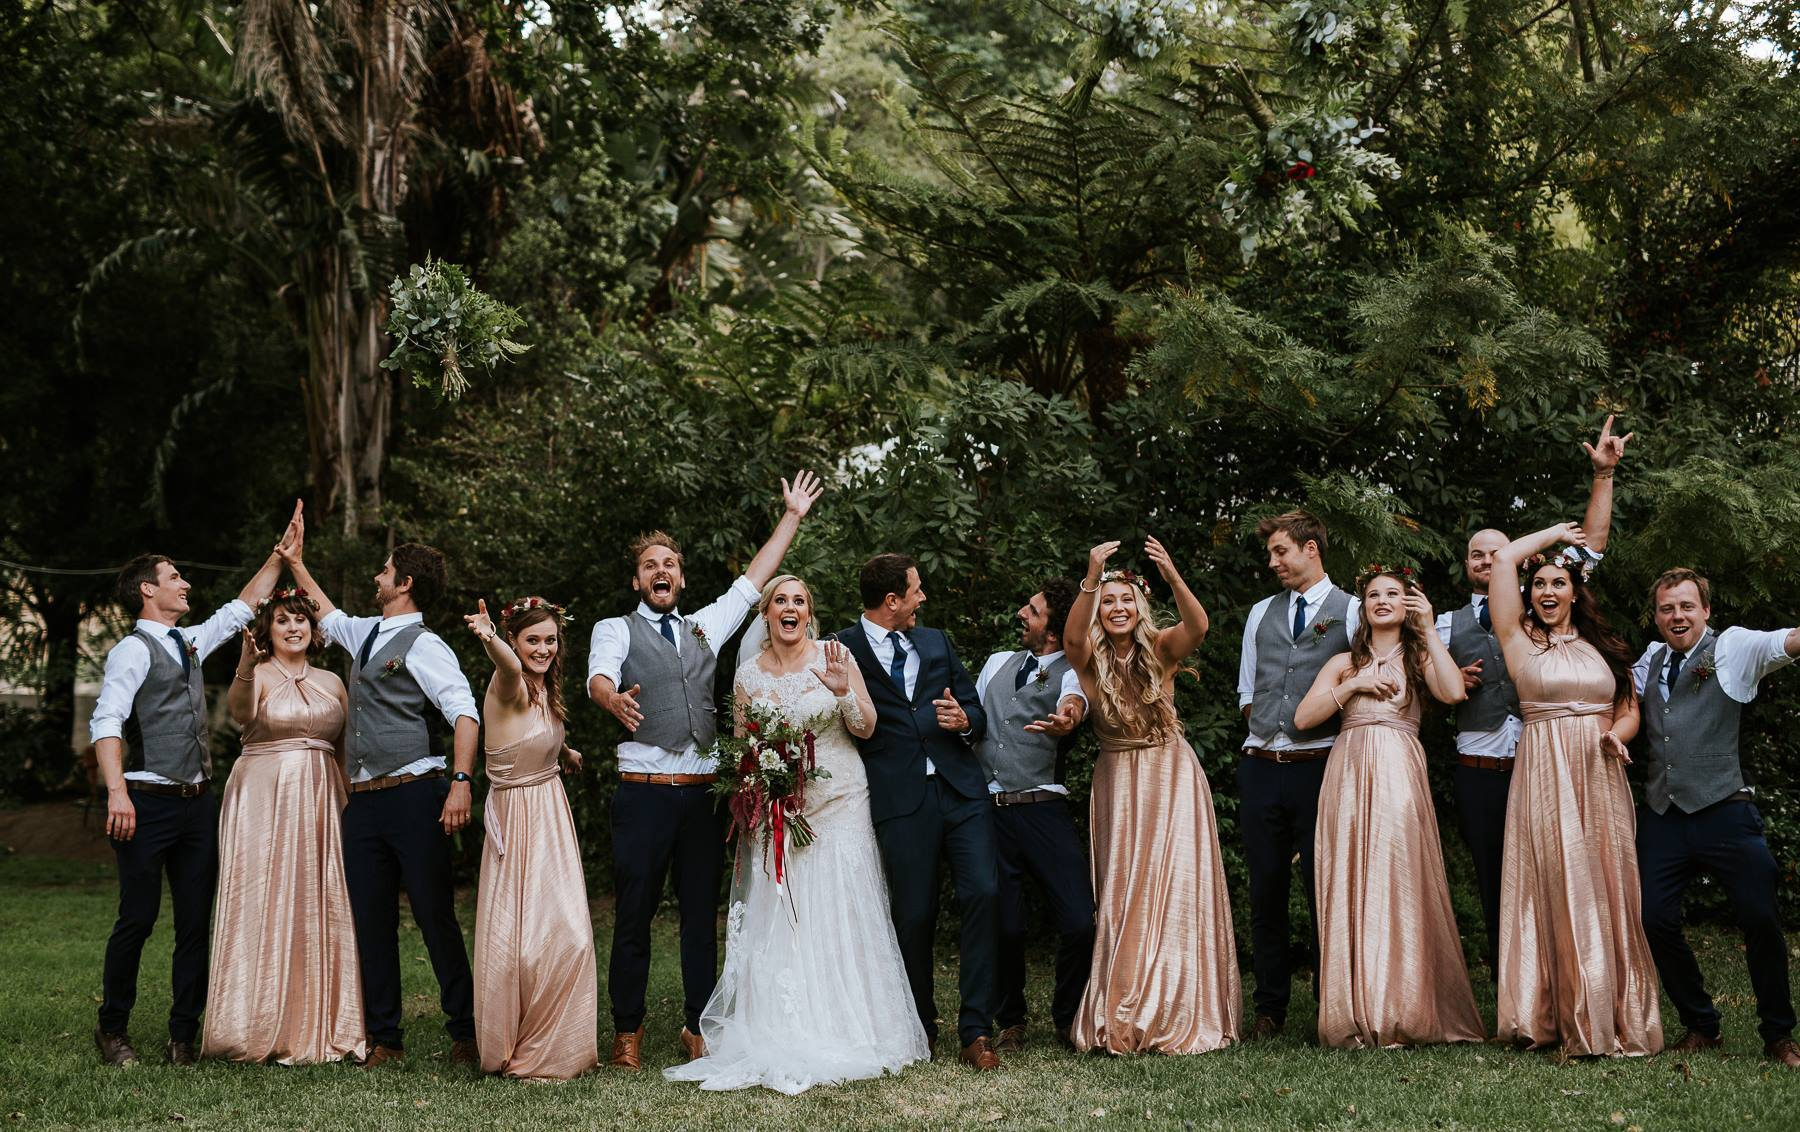 Metallic Rose Gold Bridesmaids Dress, Nicola's Wedding, South Africa